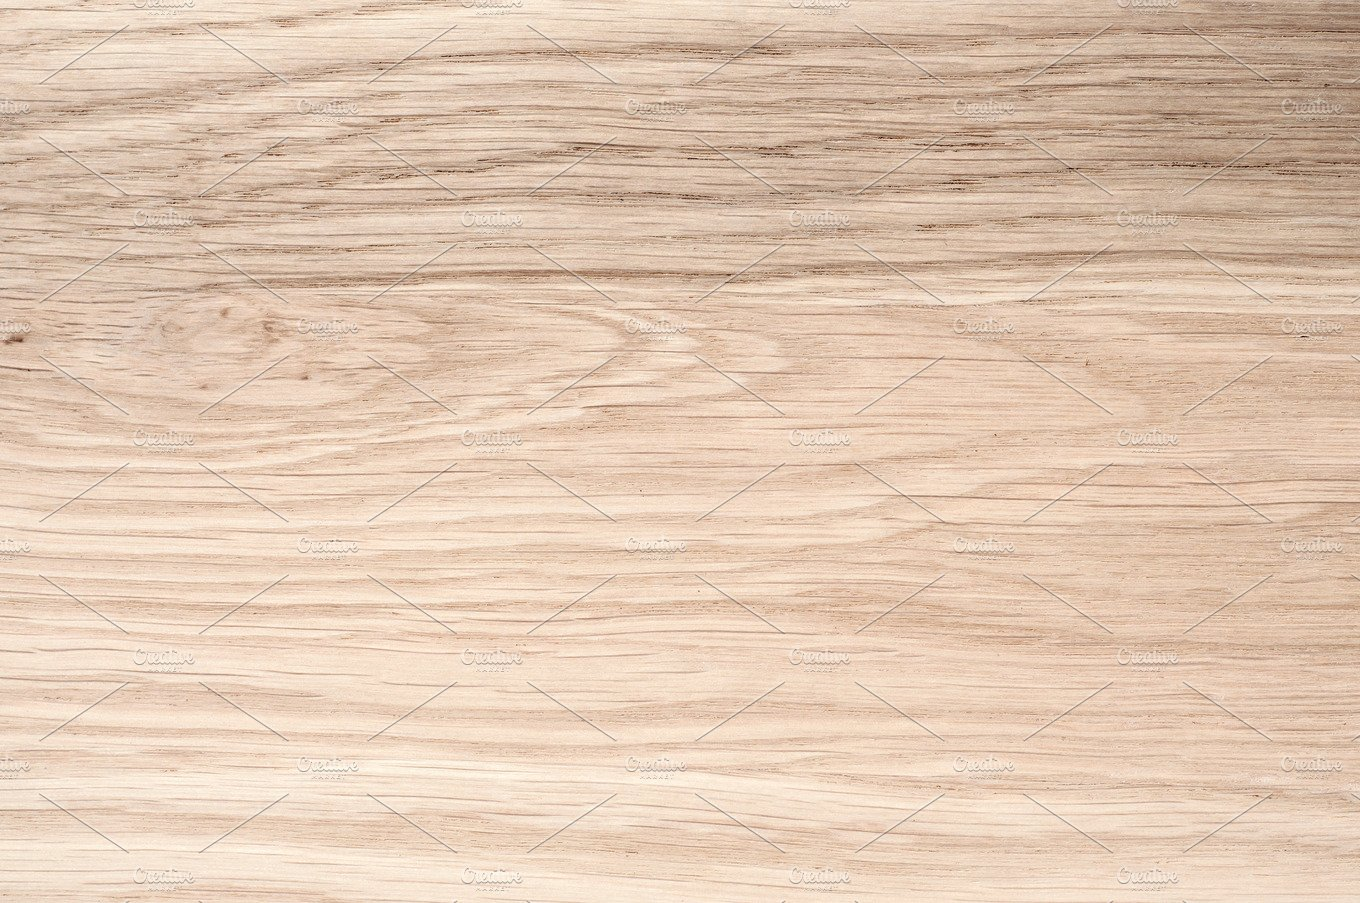 Light oak texture nature photos creative market for Texture rovere